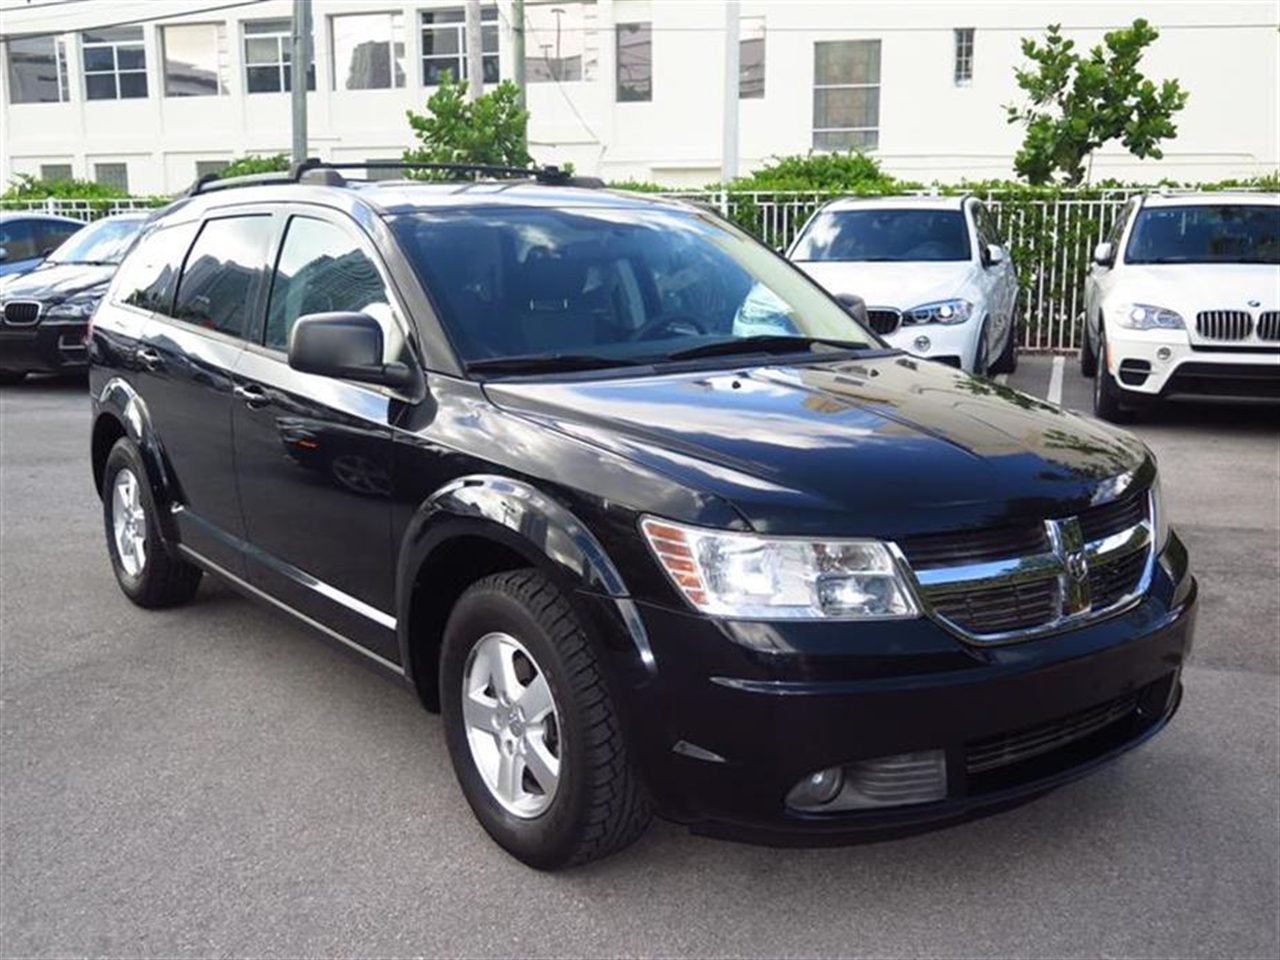 2009 DODGE JOURNEY FWD 4dr SE 45502 miles 120-mph speedometer 12V auxiliary pwr outlet 2nd row